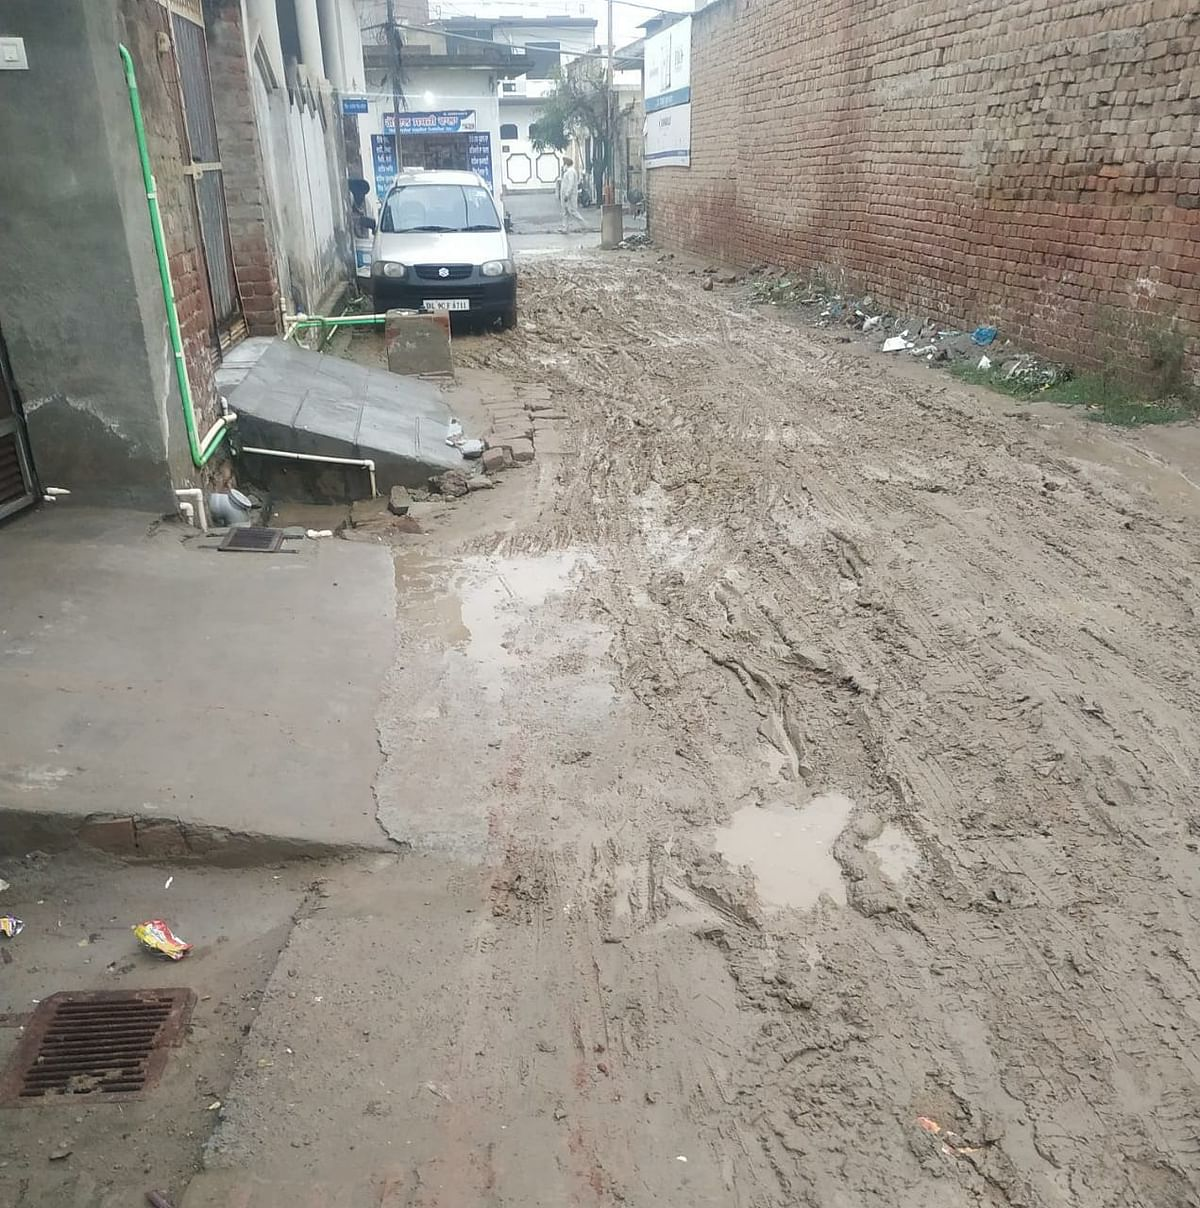 State of the road during rainy season.